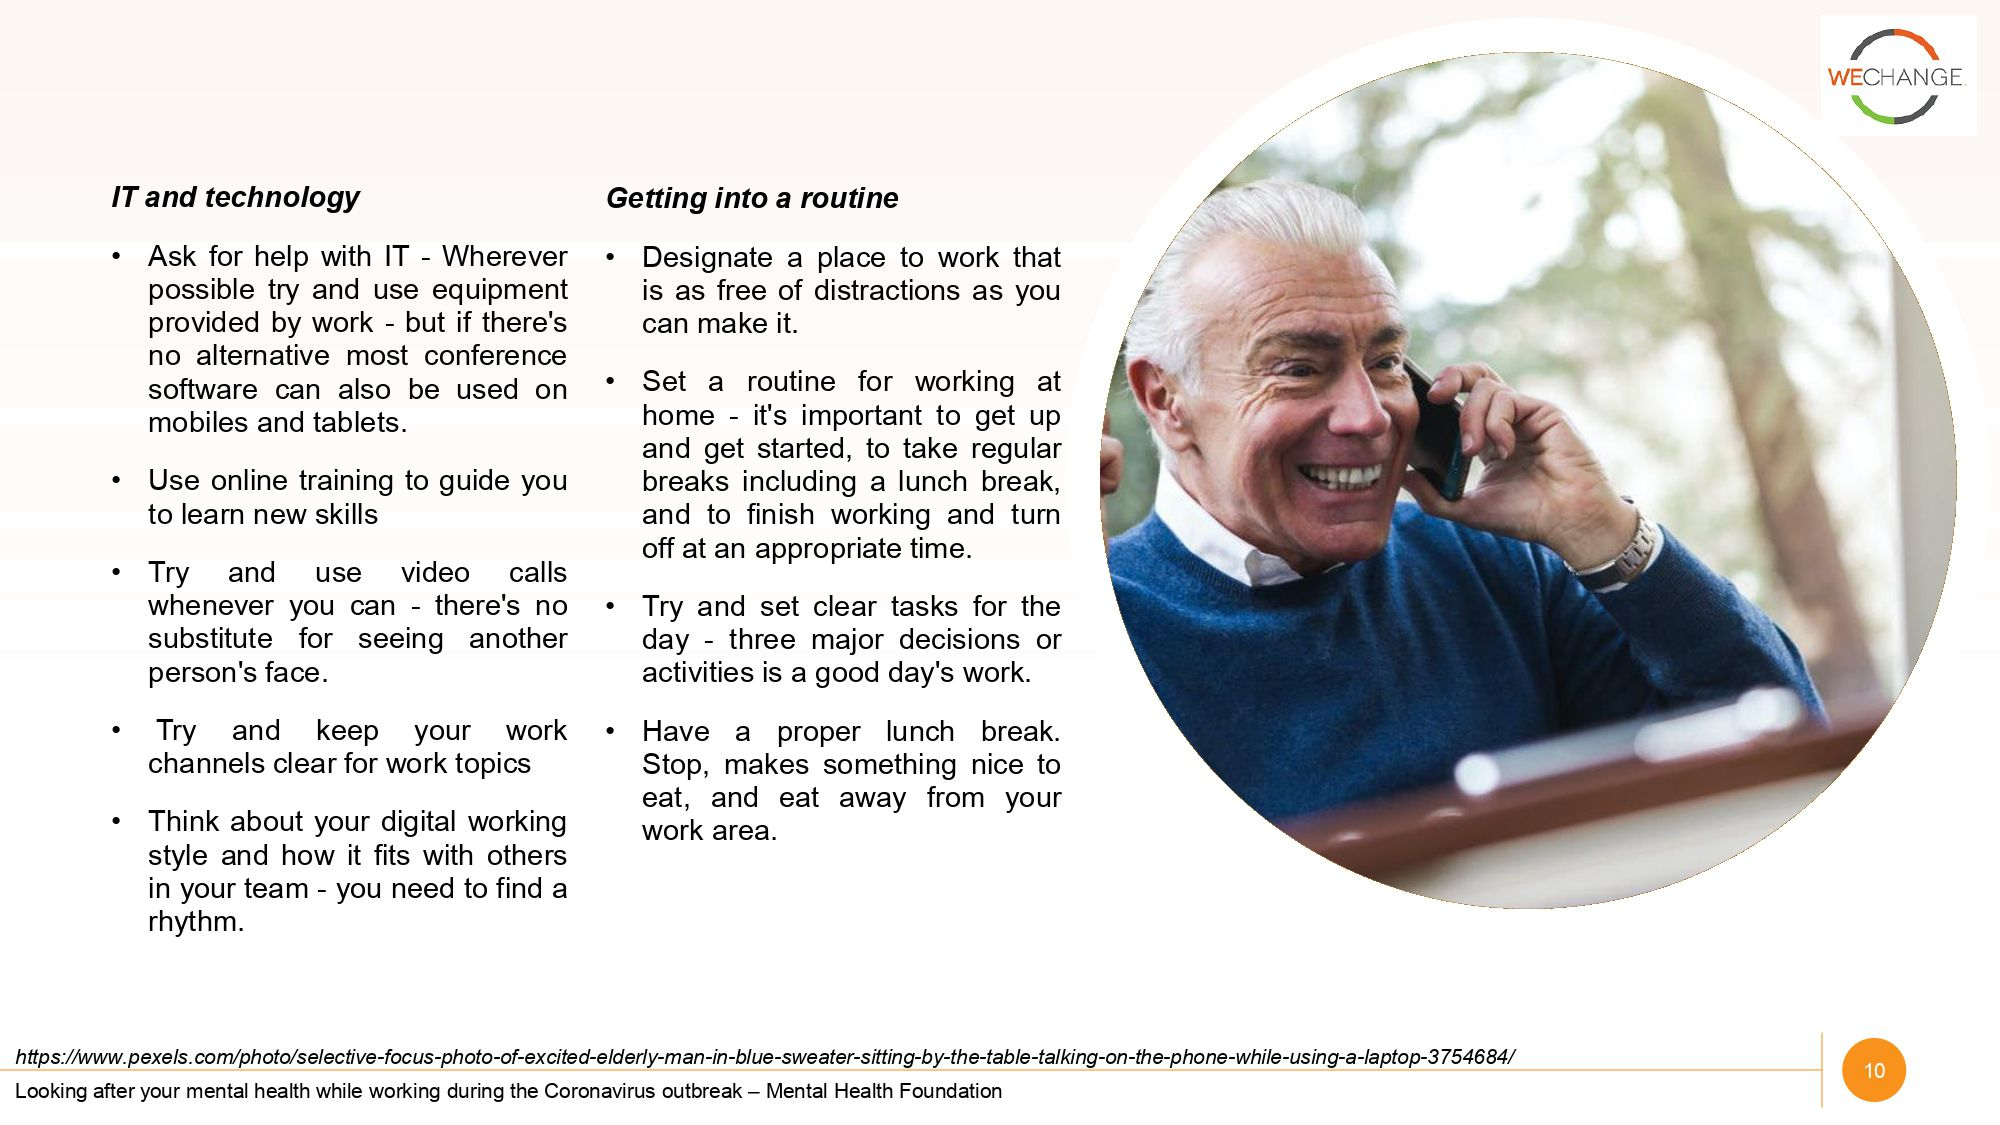 How to deal with employees stress of working from home in corona virus days page 0010 compressed How to deal with employees stress of working from home in corona virus days?